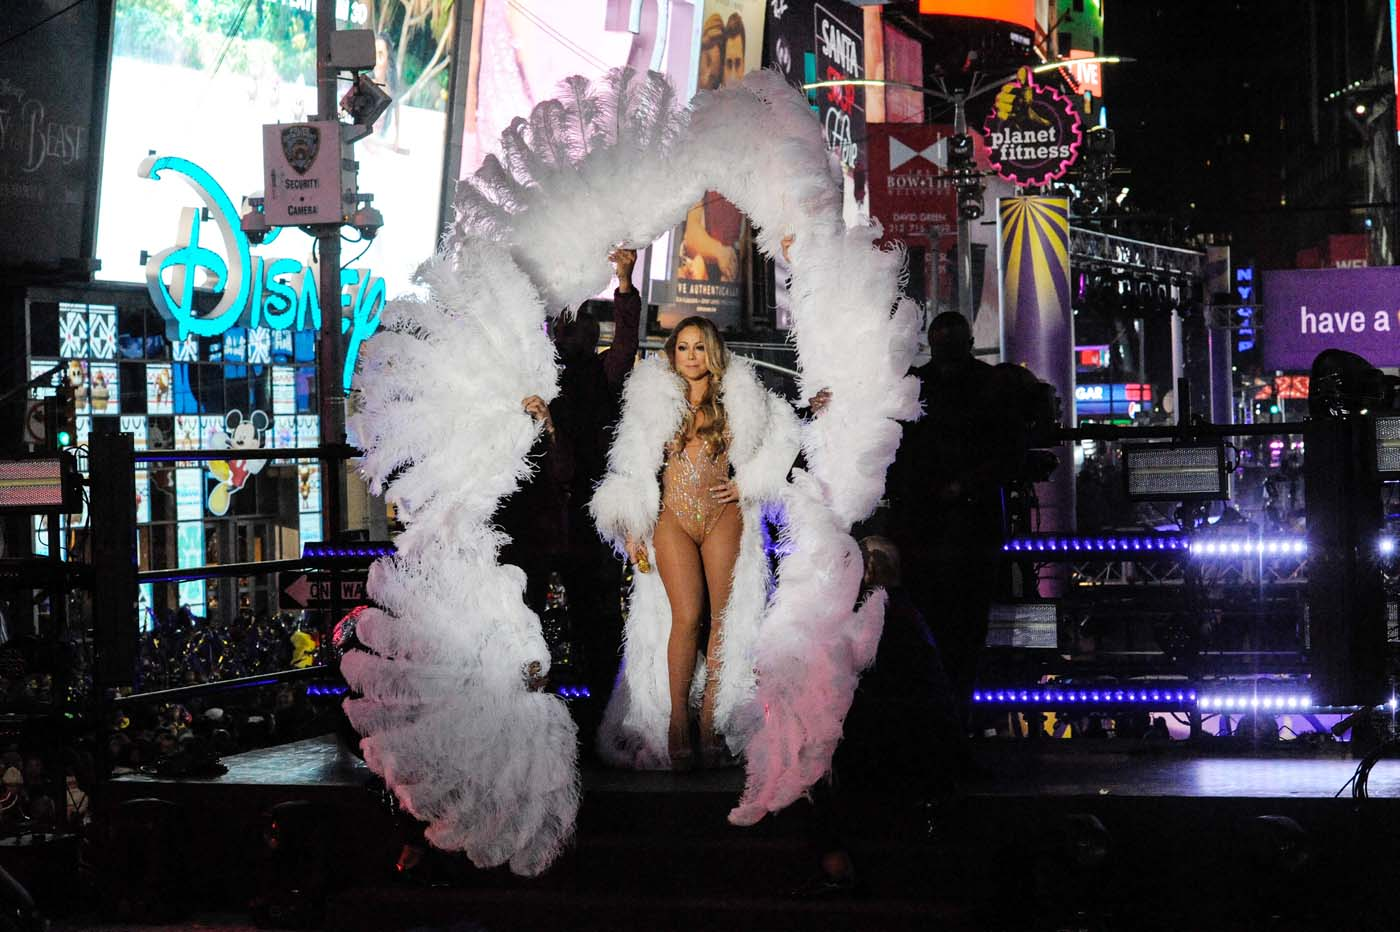 Mariah Carey performs during a concert in Times Square on New Year's Eve in New York, U.S. December 31, 2016. REUTERS/Stephanie Keith